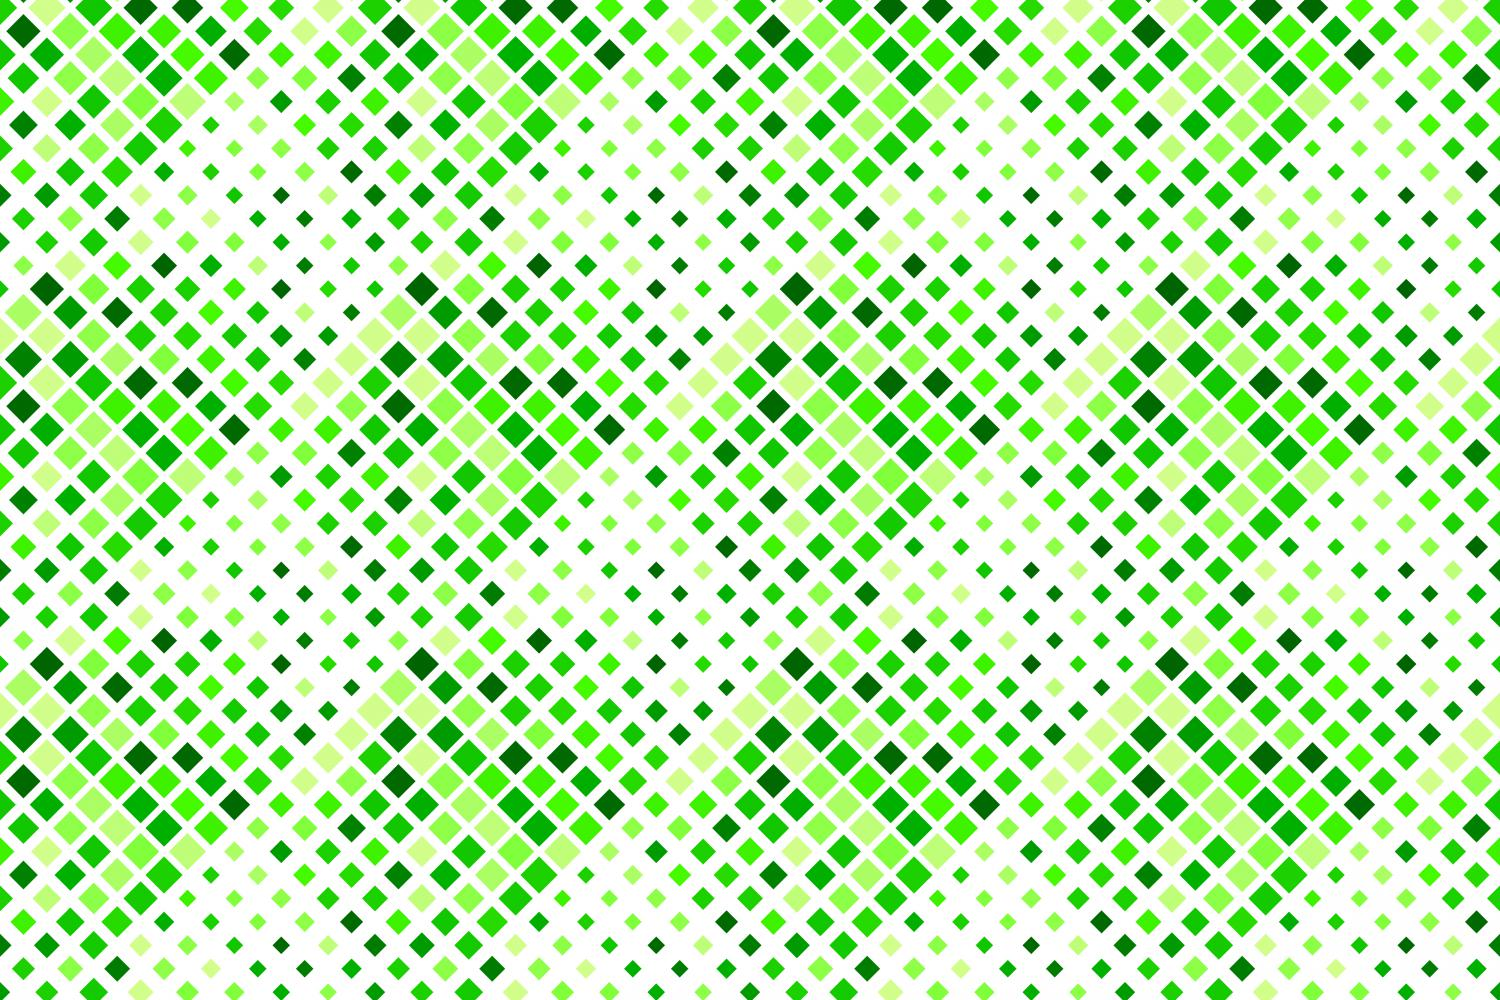 24 Seamless Green Square Patterns example image 5